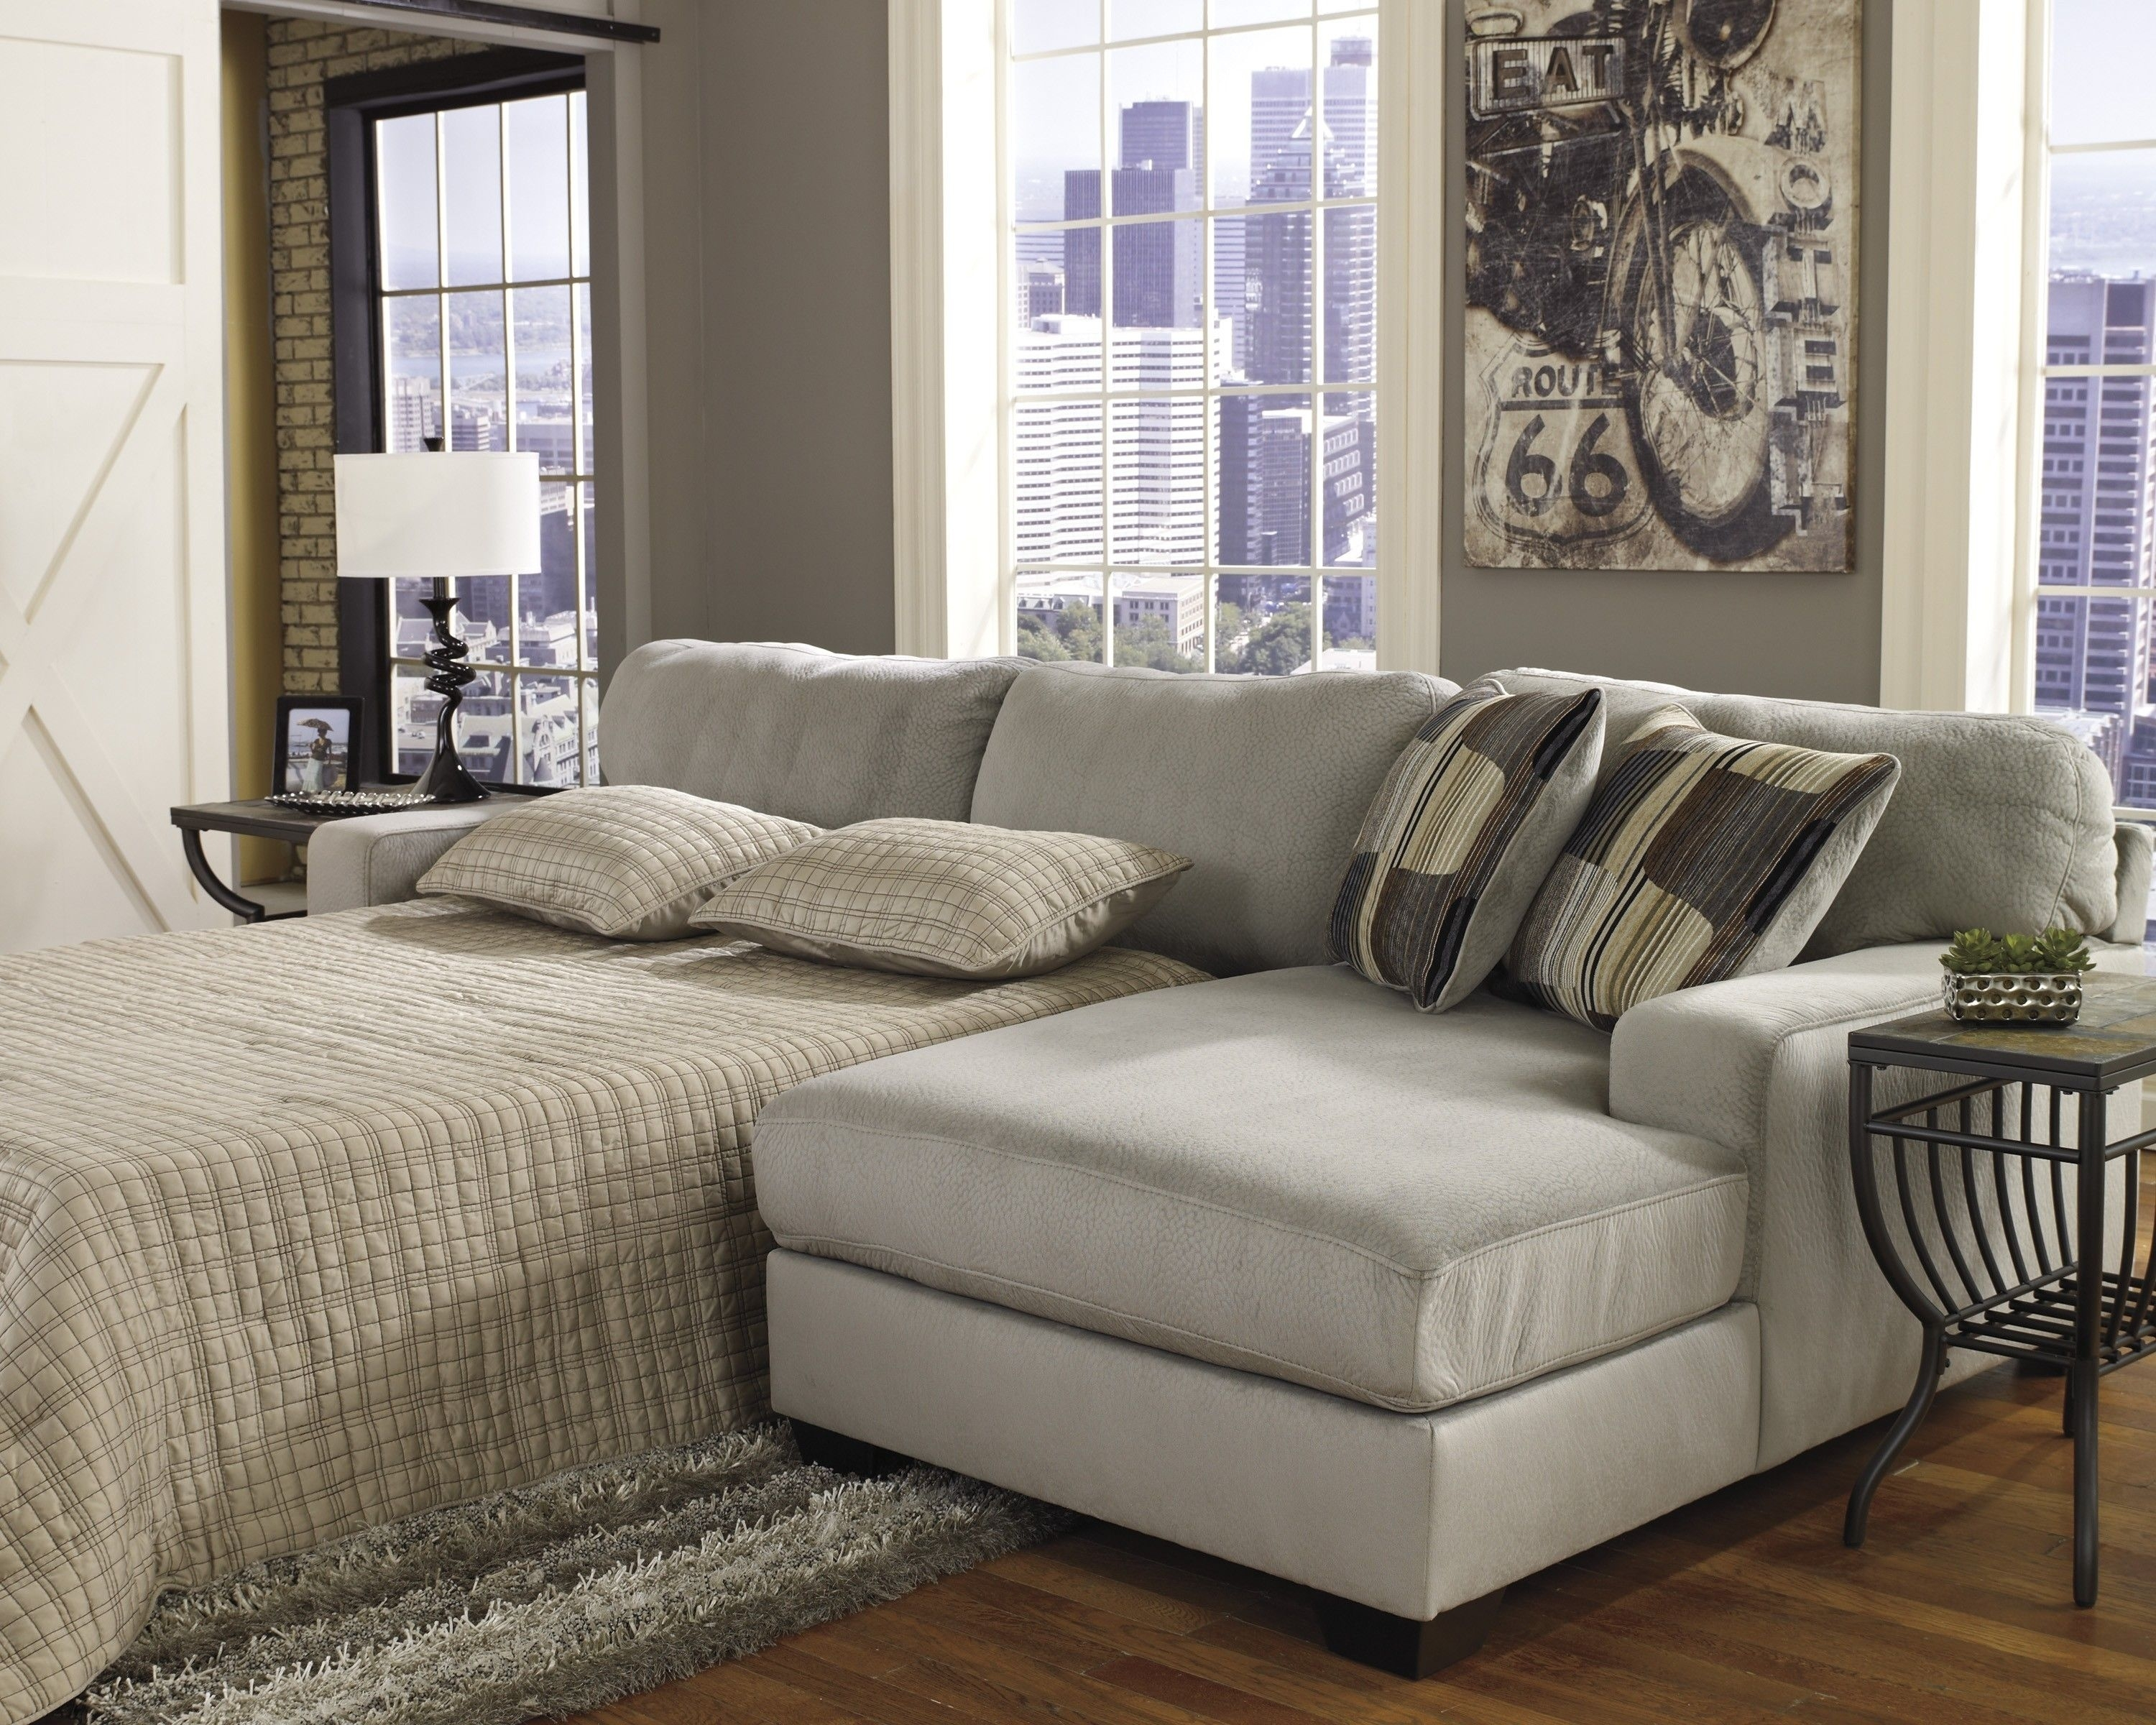 Sectional Sofa With Queen Size Sleeper | Http://tmidb with Sectional Sofas With Queen Size Sleeper (Image 8 of 10)